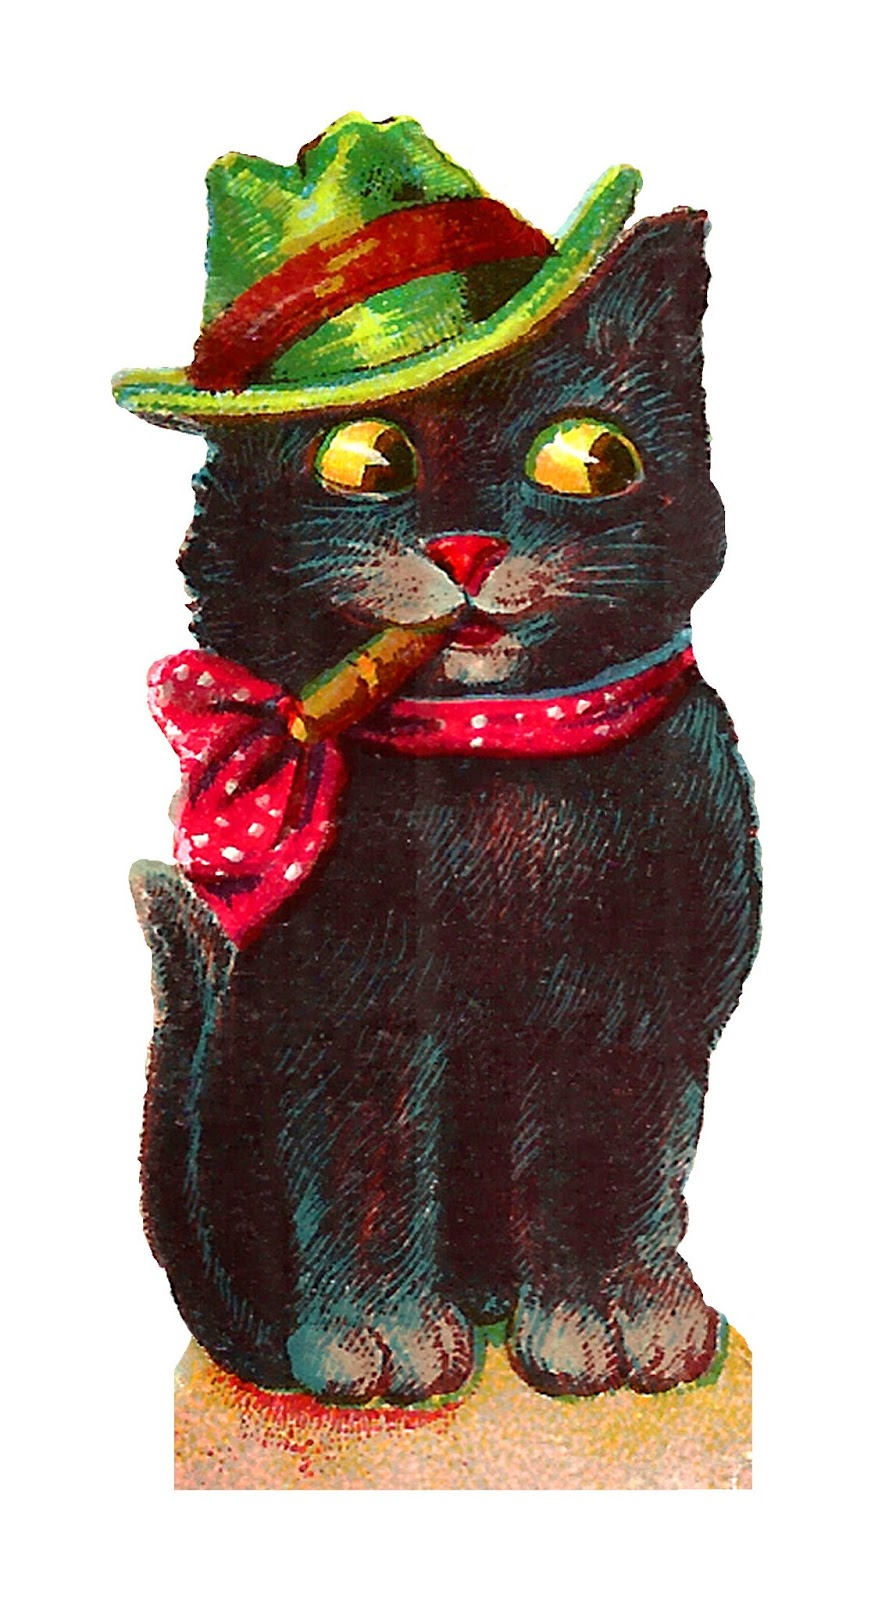 Antique Images: Vintage Halloween Black Cat Images Costumes ...